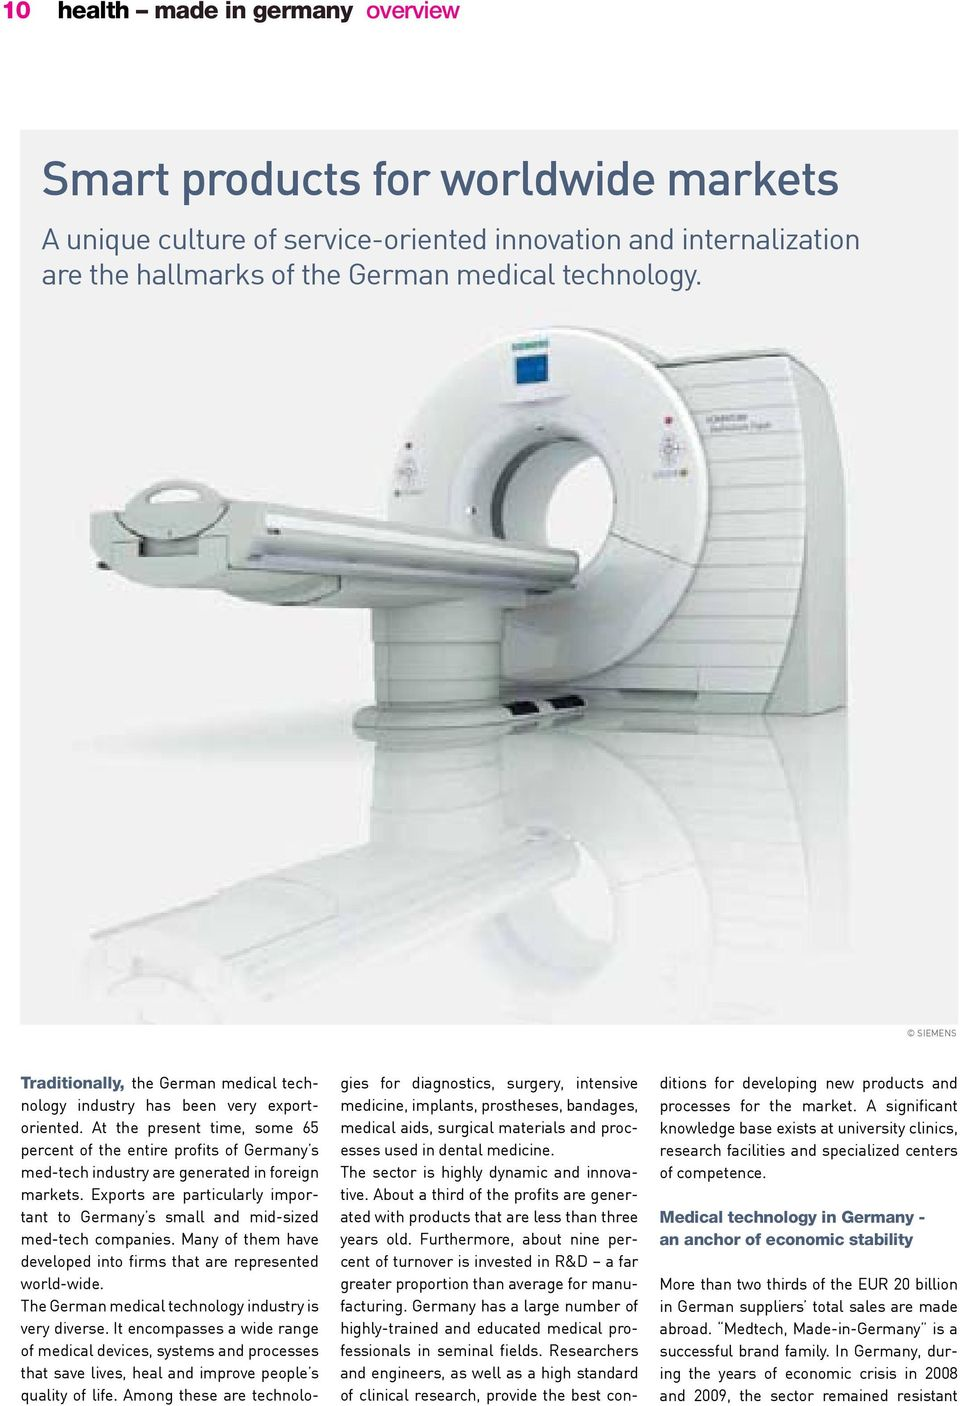 at the present time, some 65 percent of the entire profits of germany s med-tech industry are generated in foreign markets.